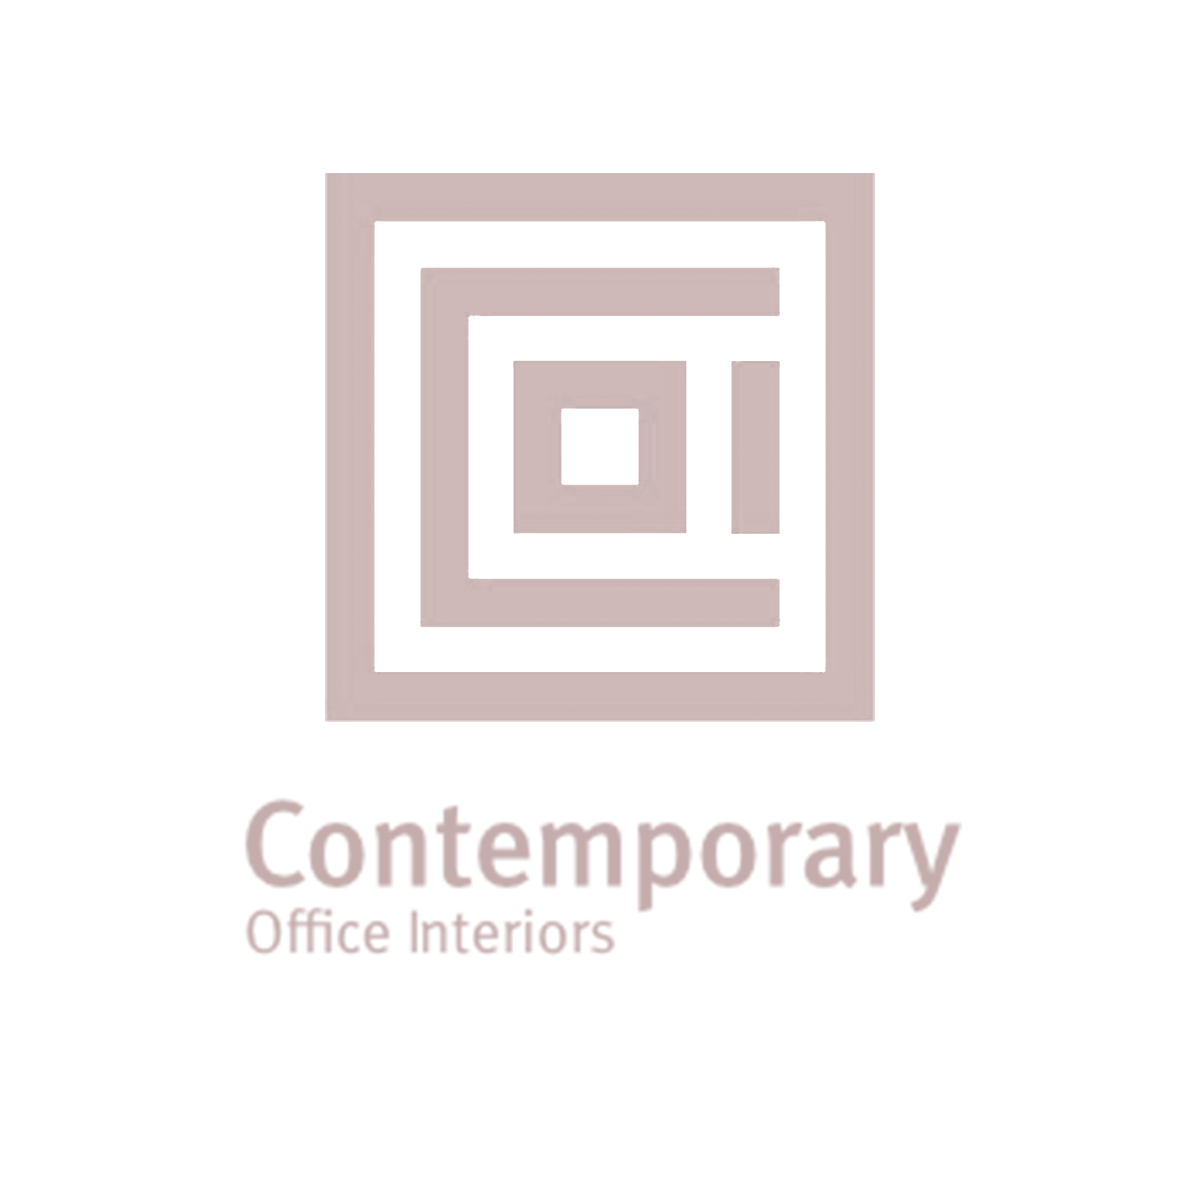 COI logo square.png